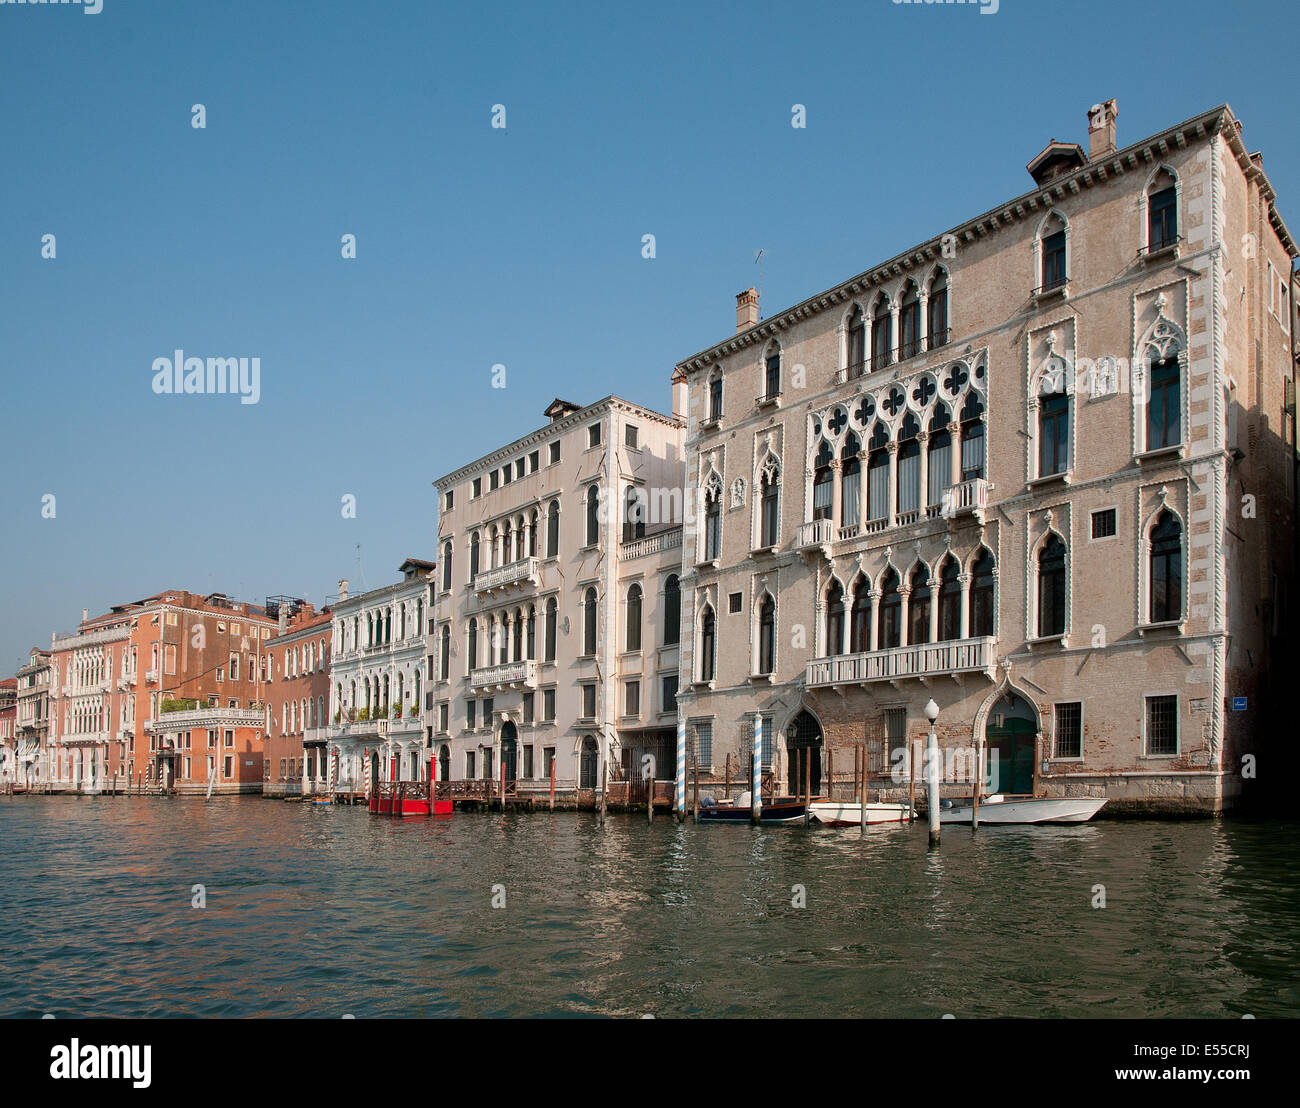 Beautiful palaces buildings houses palazzo pallazi with moored motor boats on the Grand Canal Venice Italy  GRAND - Stock Image